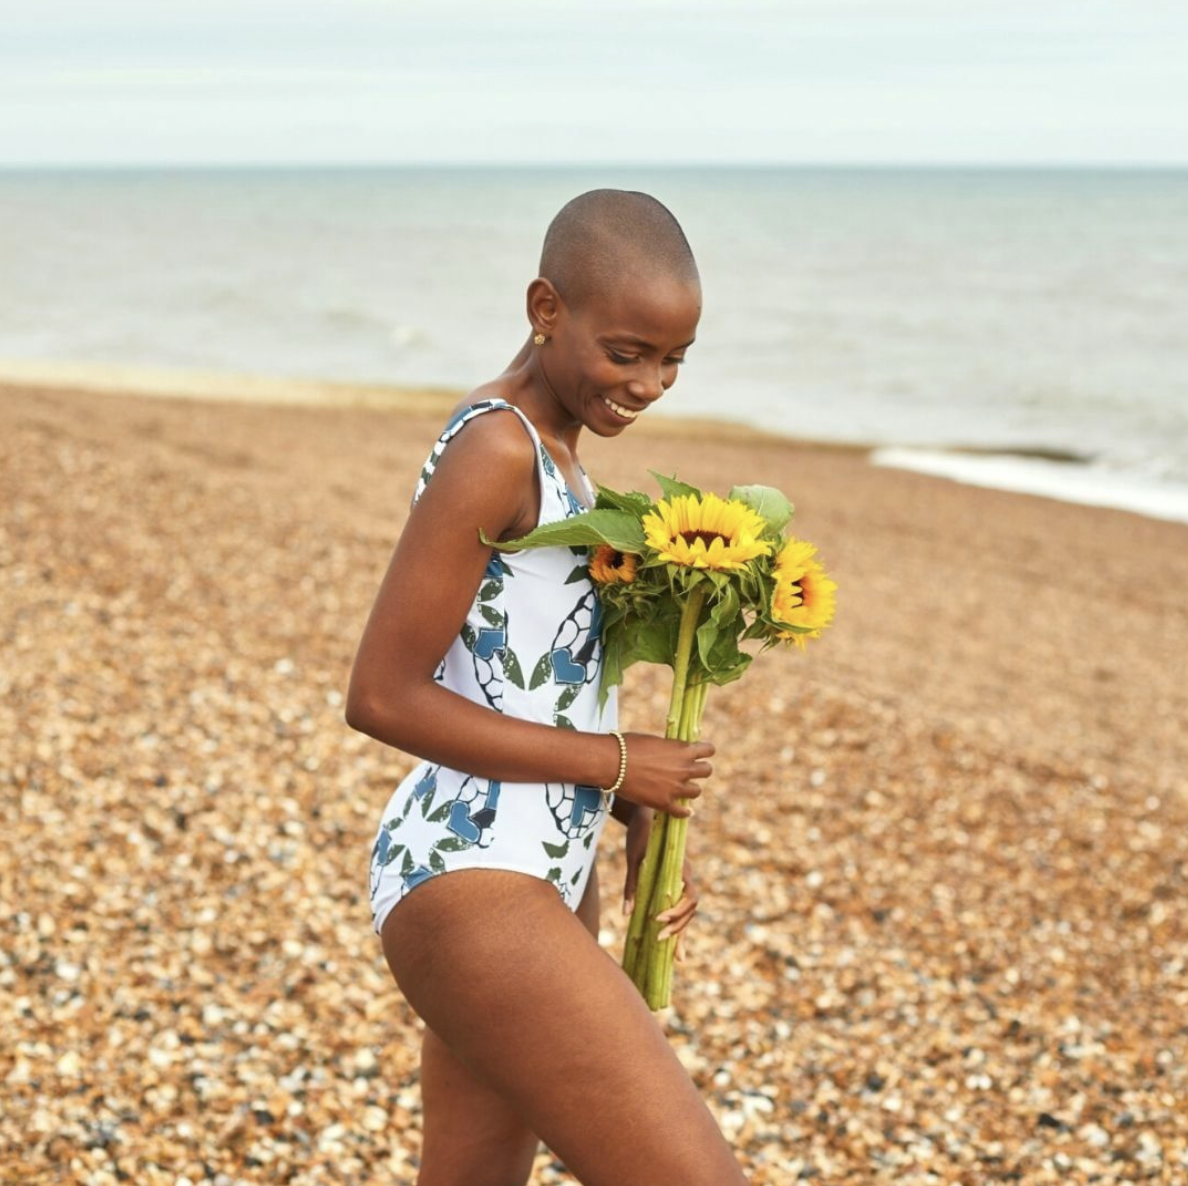 We're obsessed w/ some seriously stunning swimsuits. Black-owned fashion brands like lemlem, Jade Swim, Sunday London & Nakimuli coming in hot!